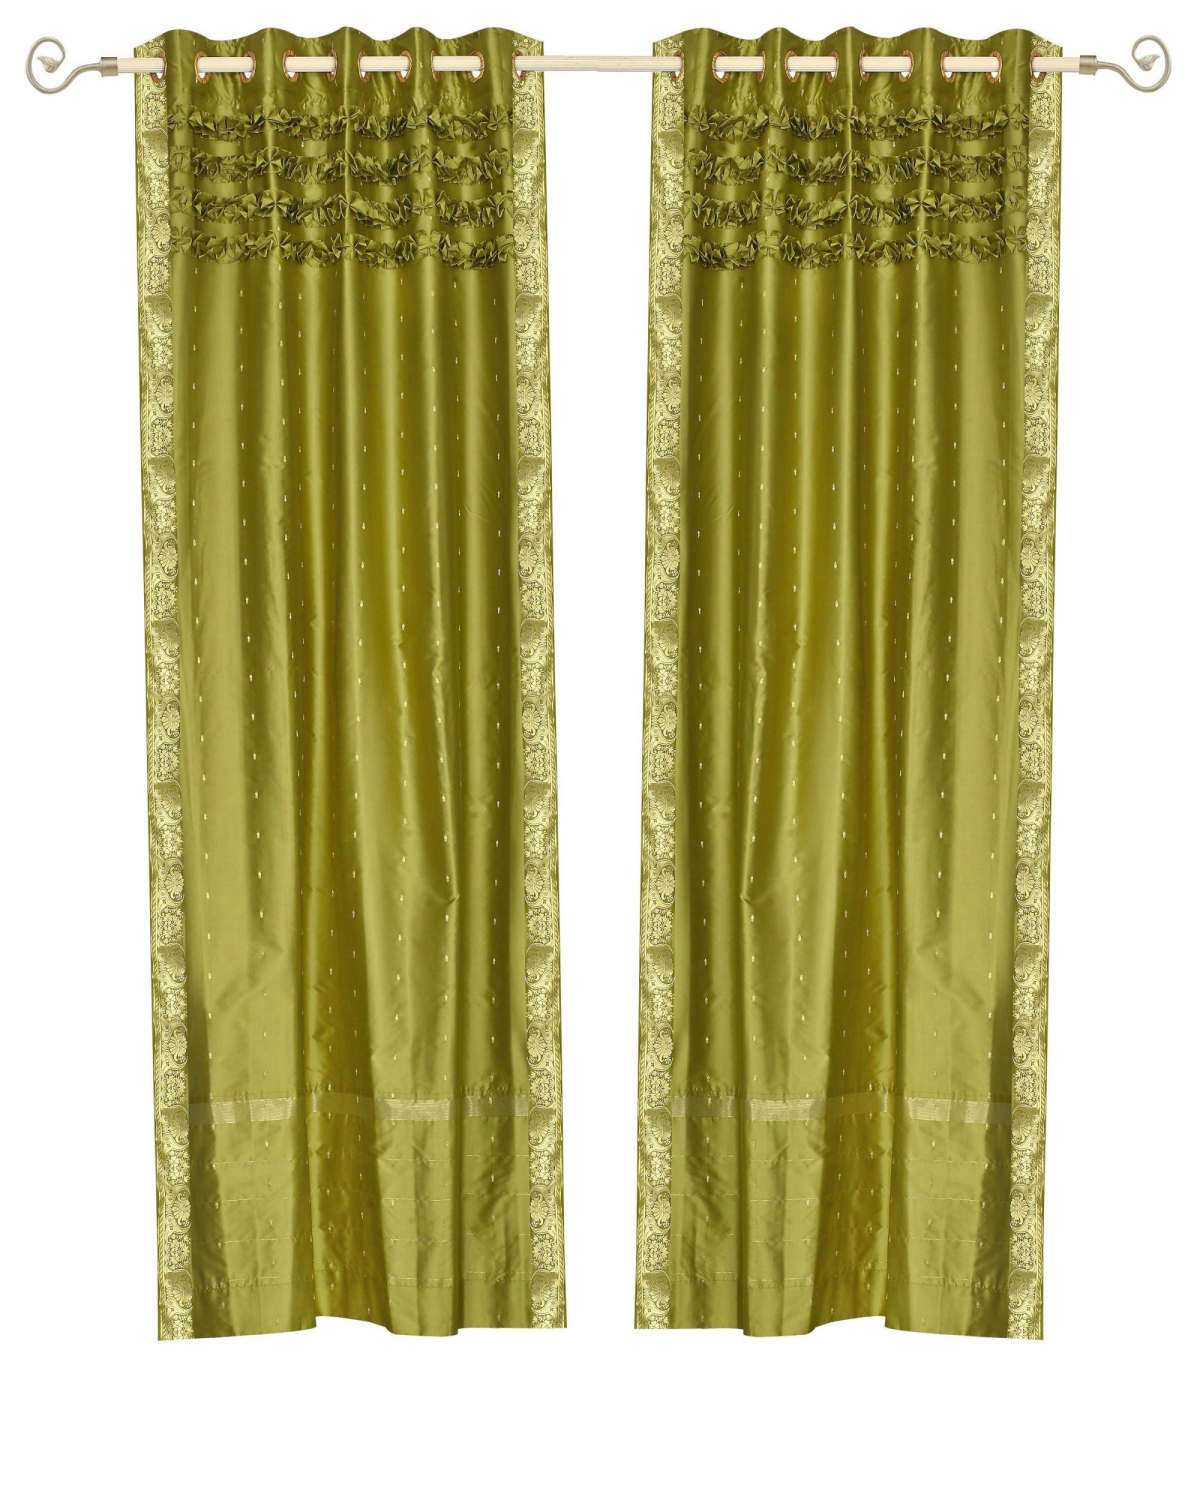 Olive Green Hand Crafted Grommet Top Sheer Sari Curtain Panel -Piece CTHCOGPARENT